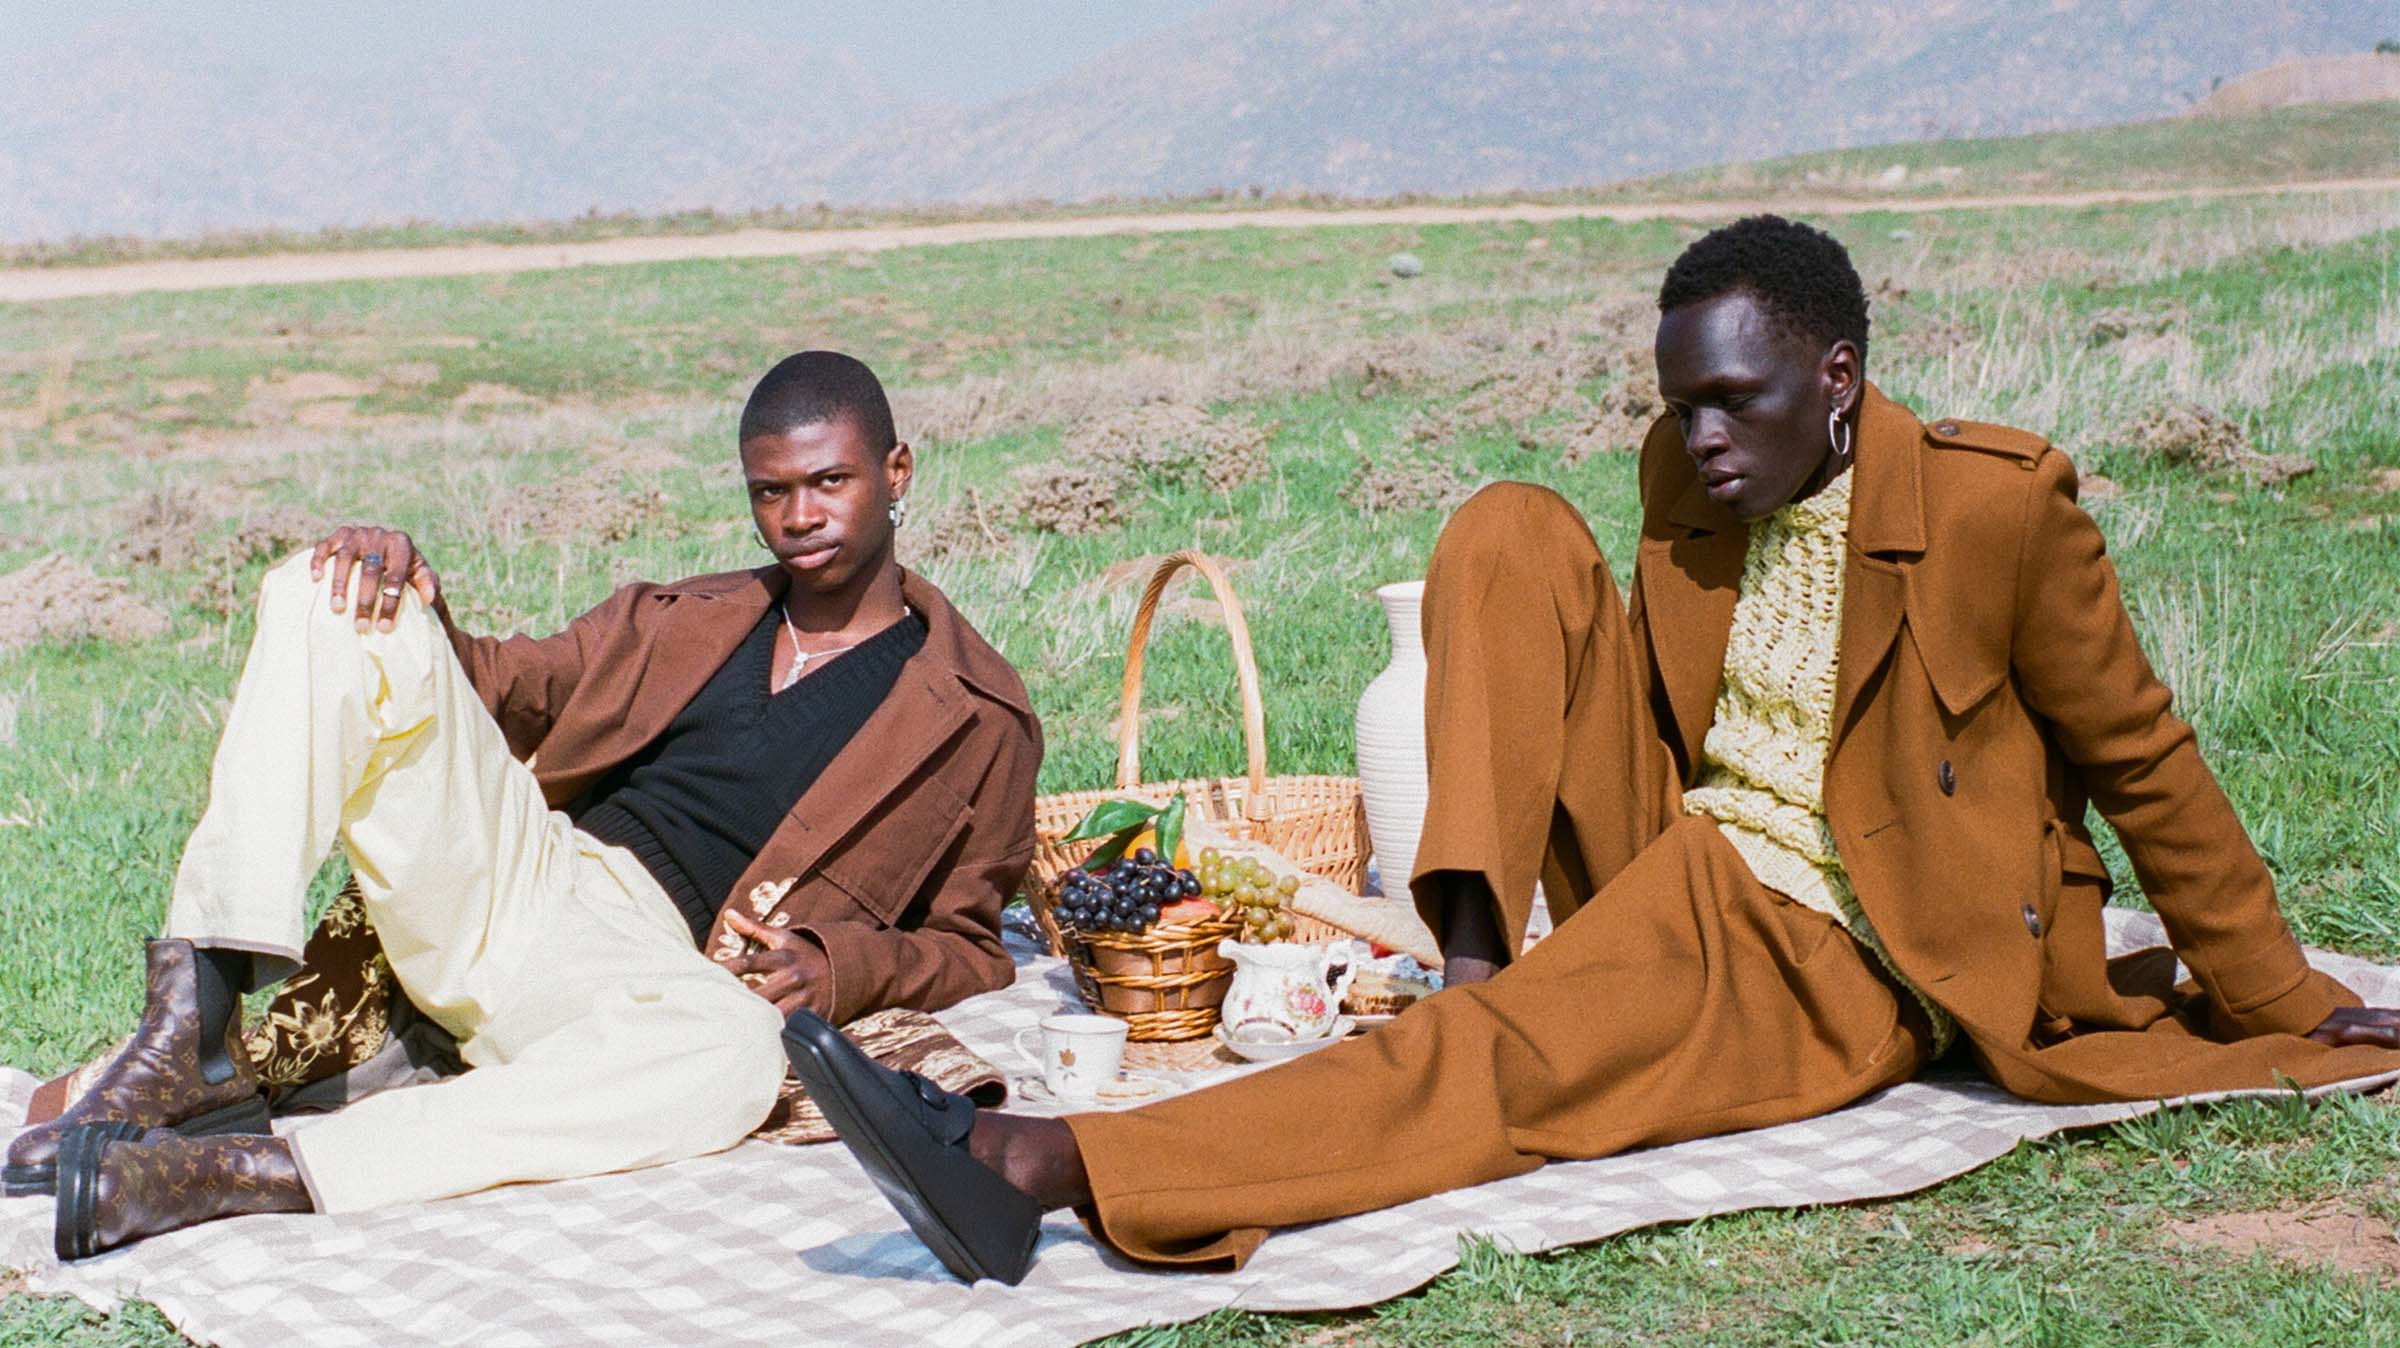 A picnic for the gods